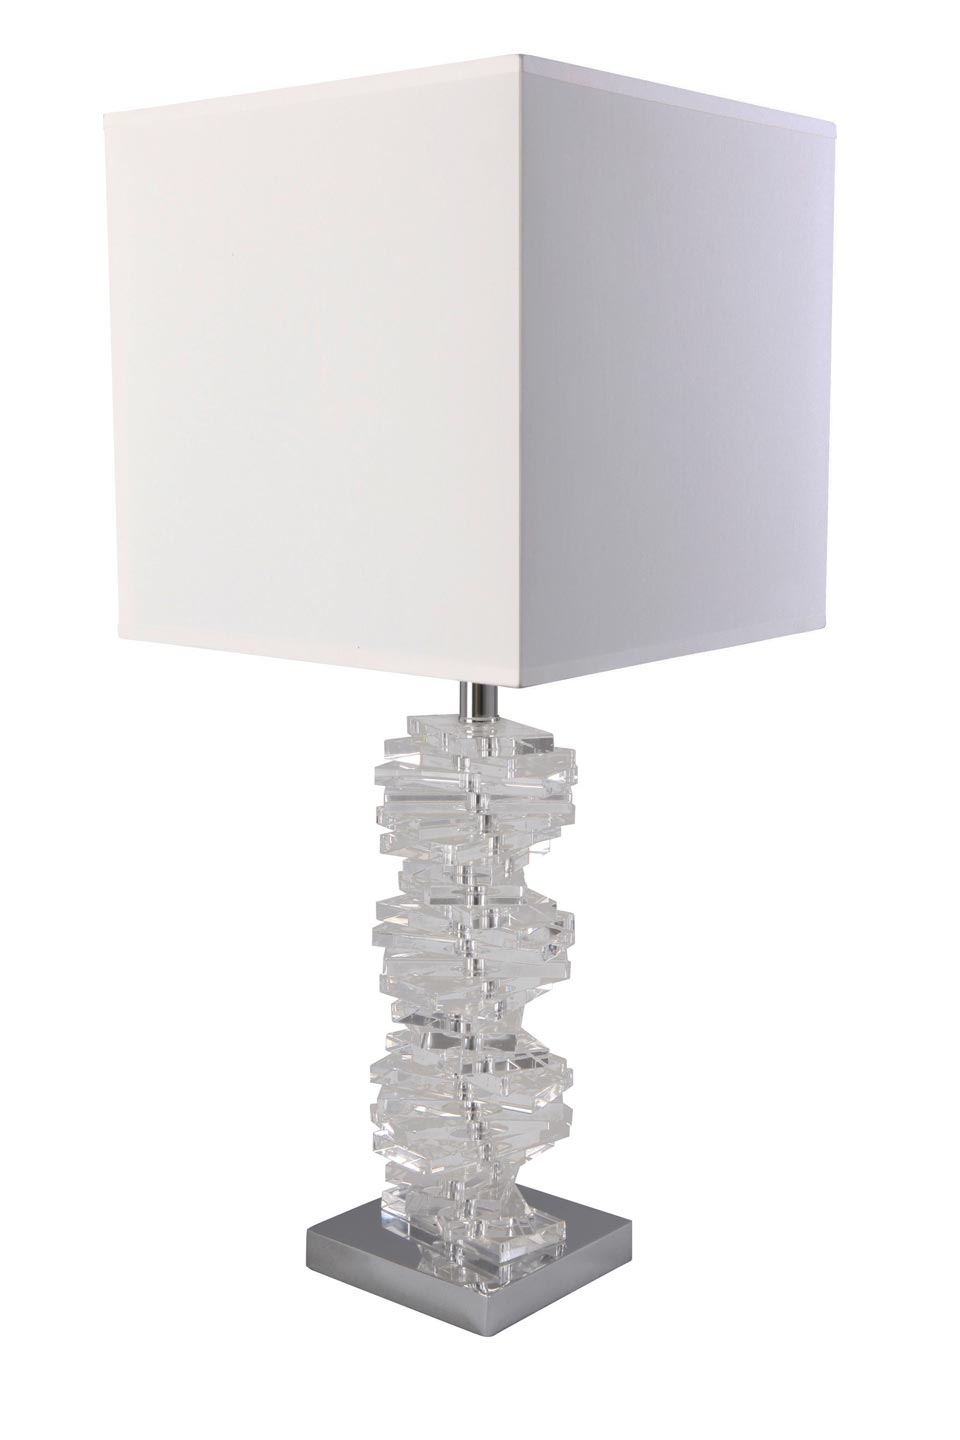 Available In Large Size Spiral Cut Glass Base Lamp